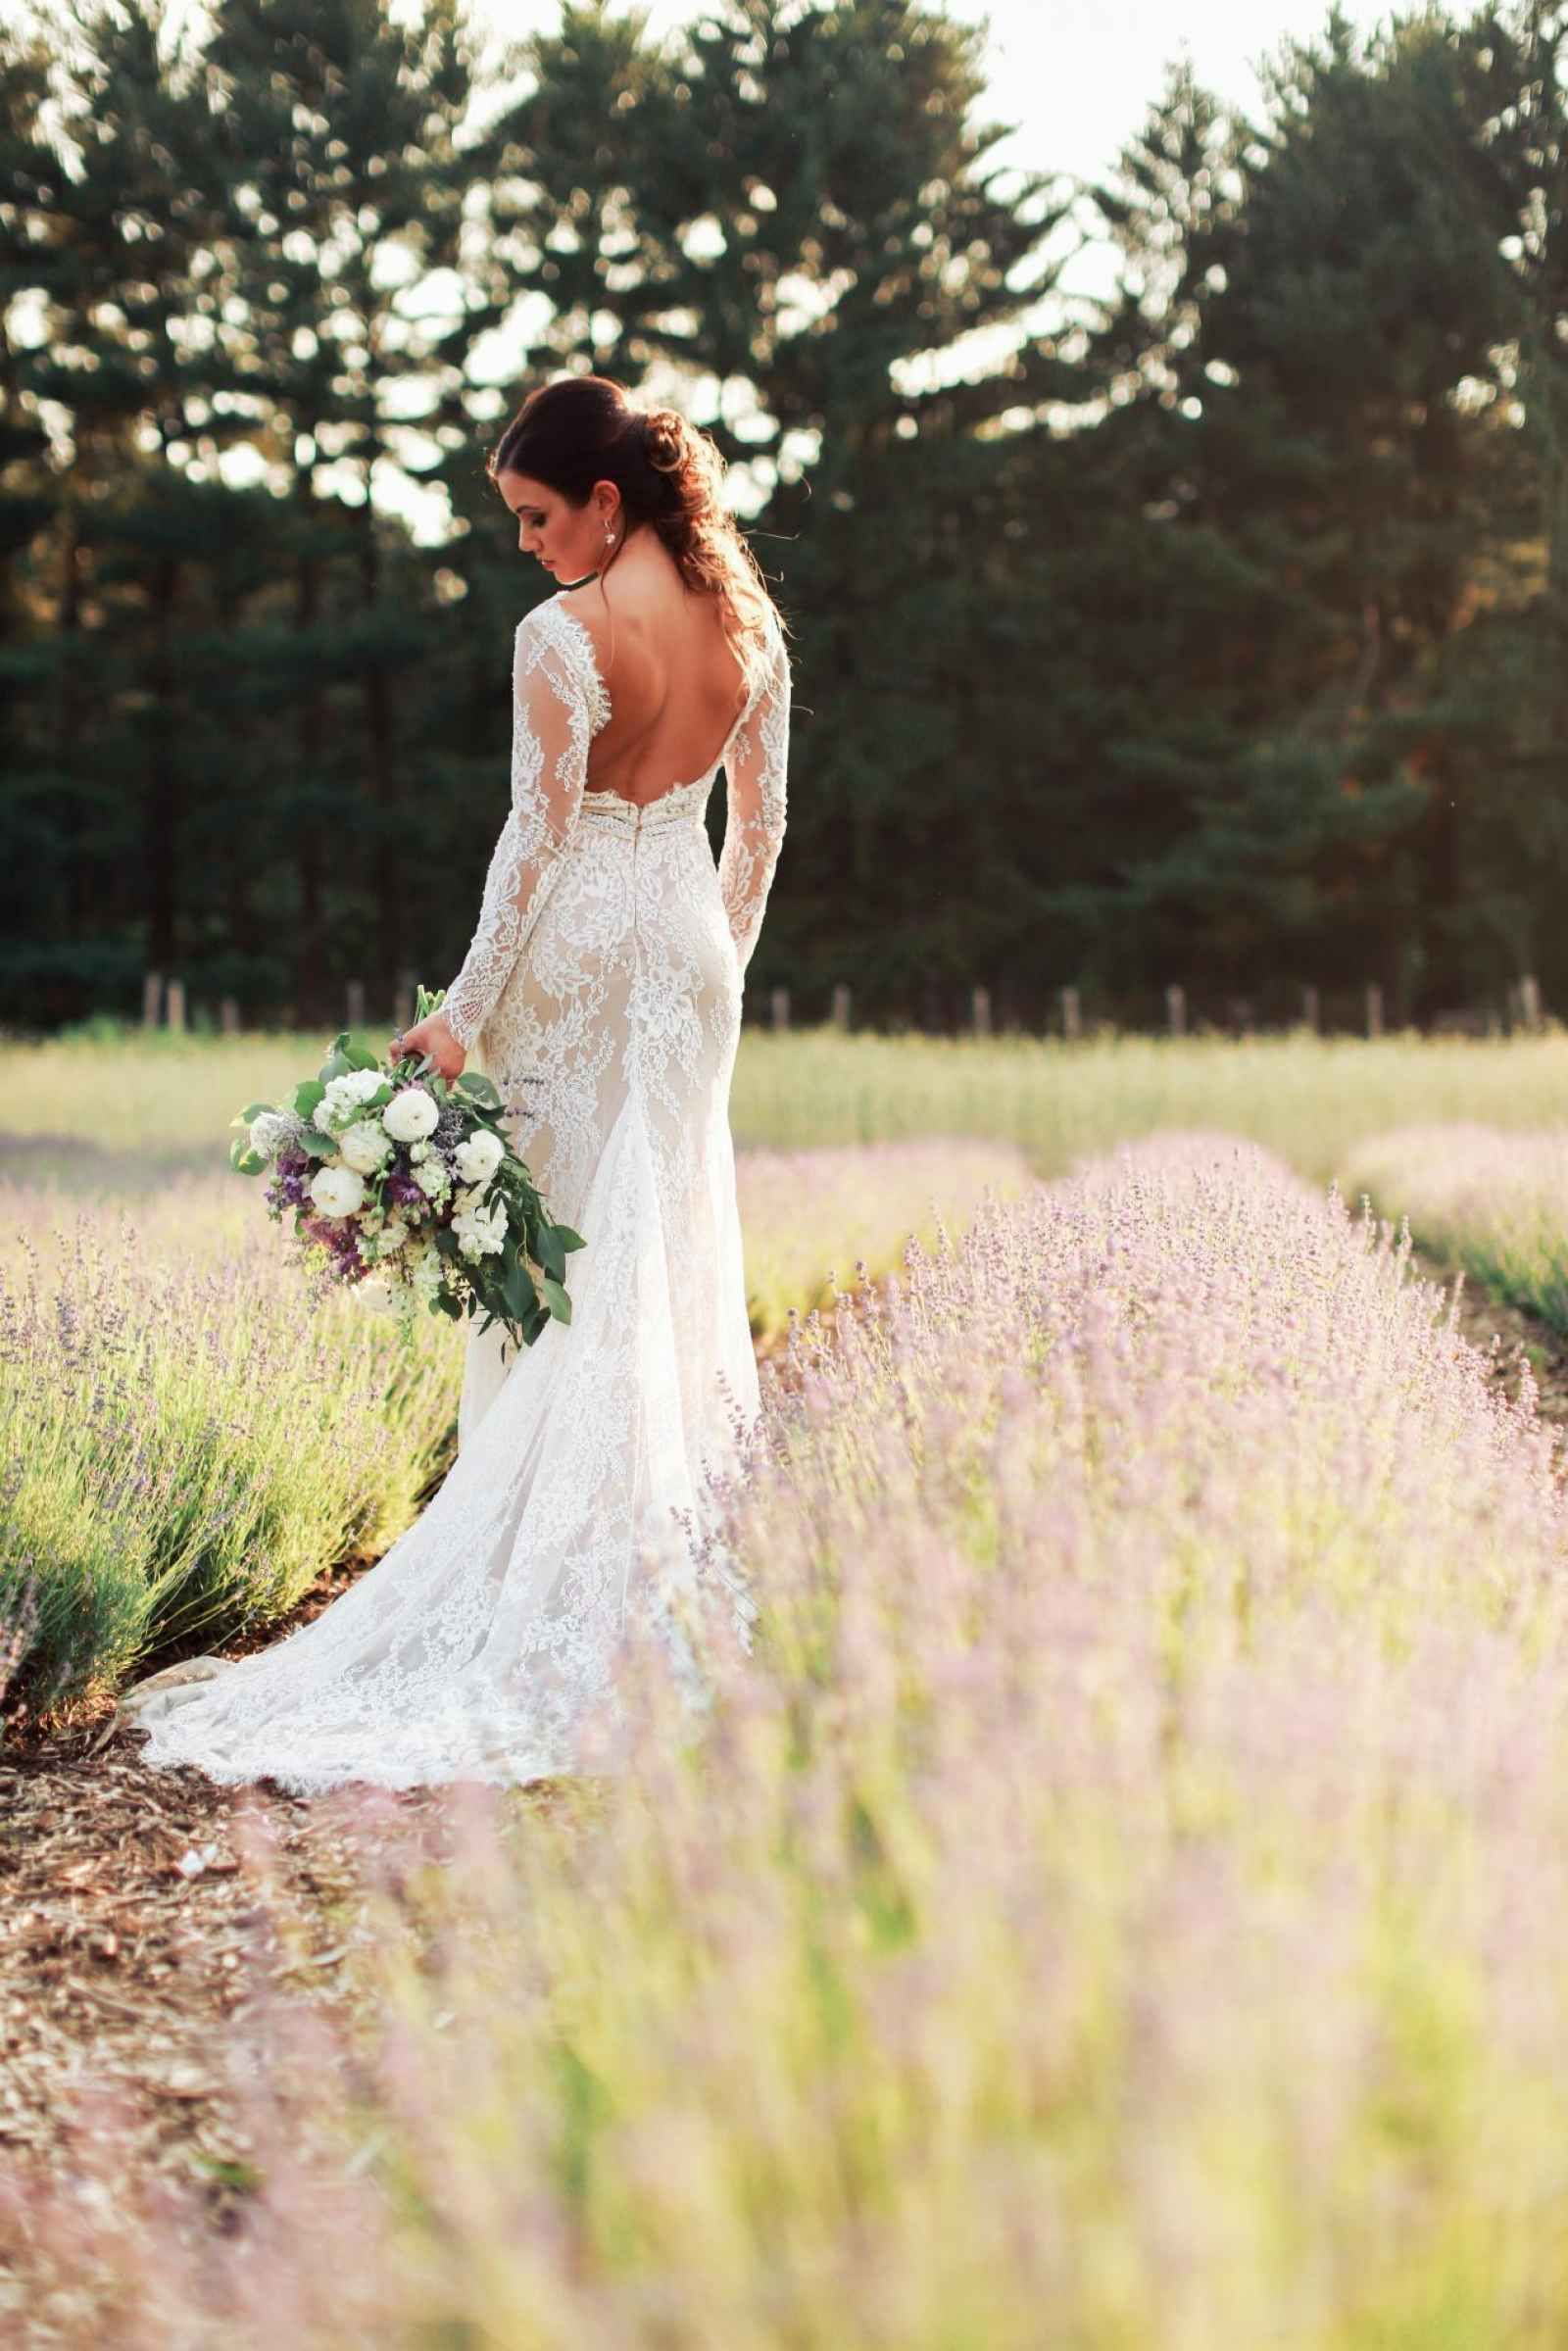 Long Sleeve Lace Wedding Dress With Low Back A Style Shoot In Dreamy Lavender Field Weddingday Magazine